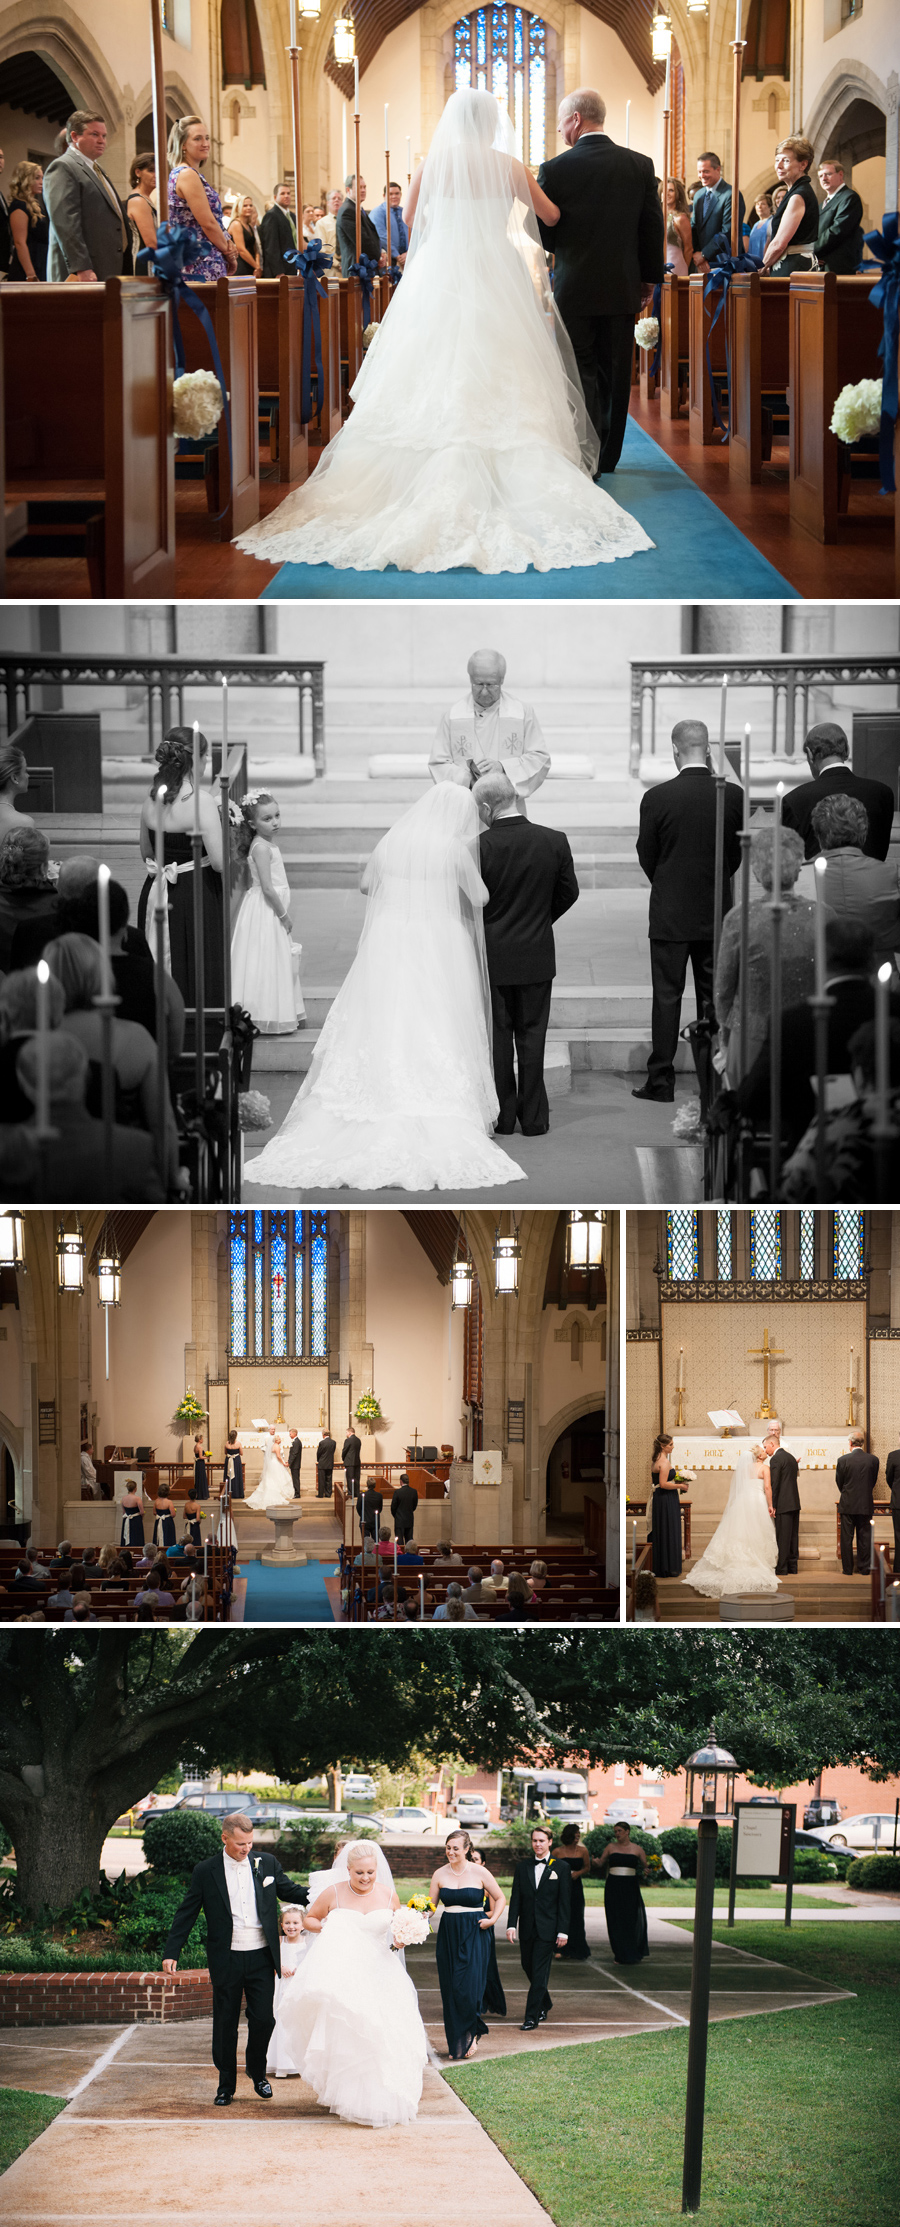 Bess and Tyler wedding at Ebeneezer Lutheran in Columbia Sc